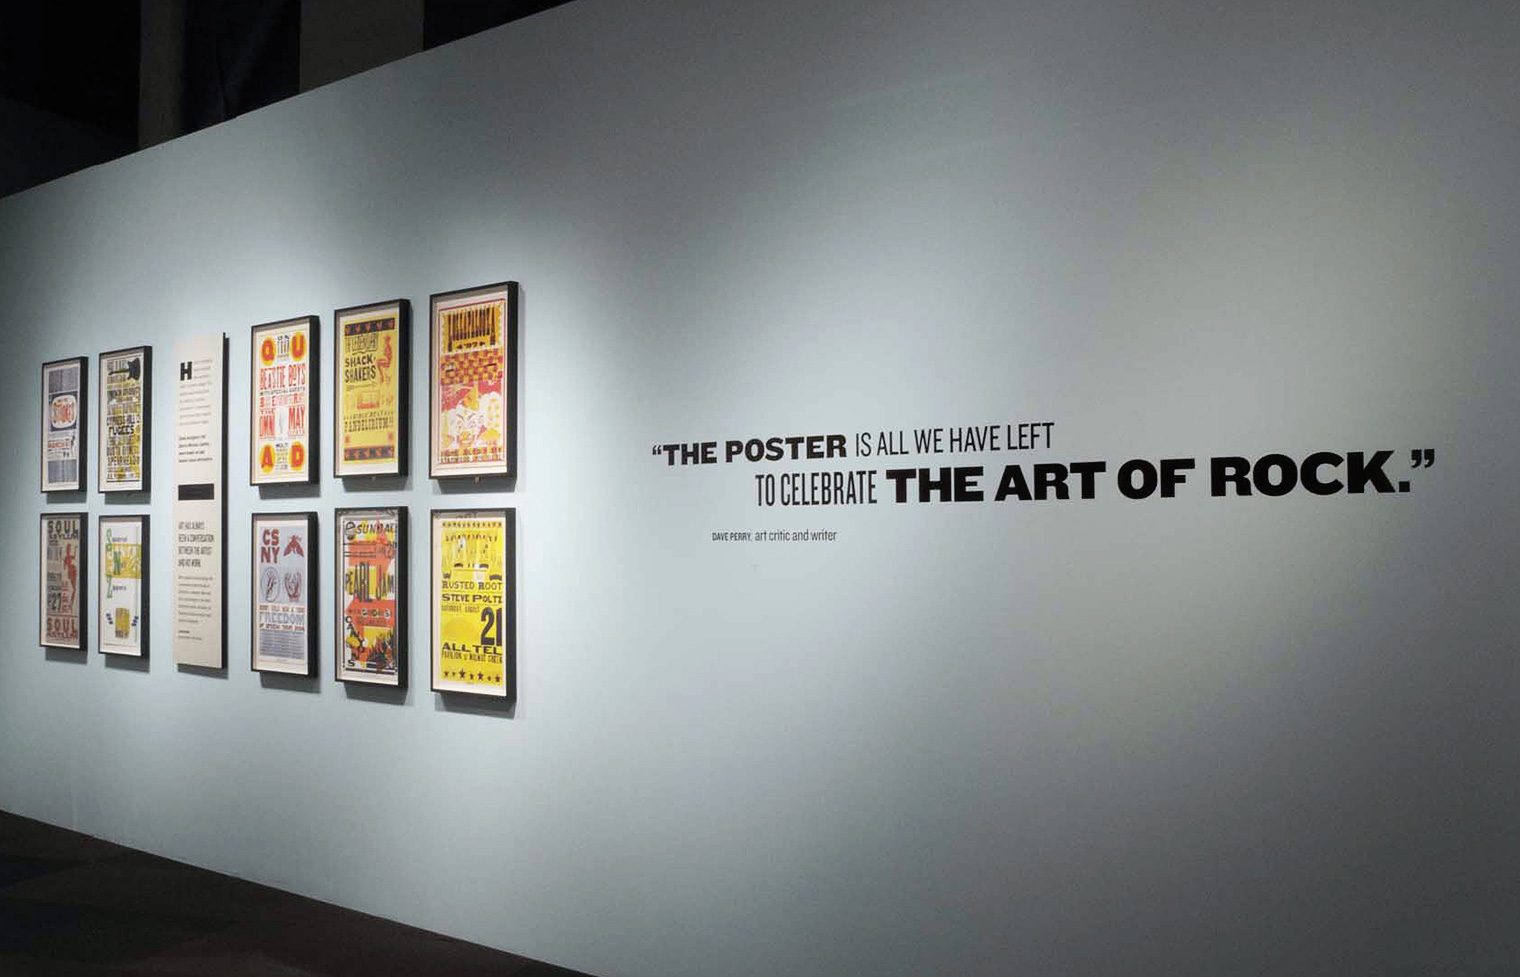 Quotes in the exhibition are treated with a variety of wood type fonts, echoing the aesthetic of the posters.